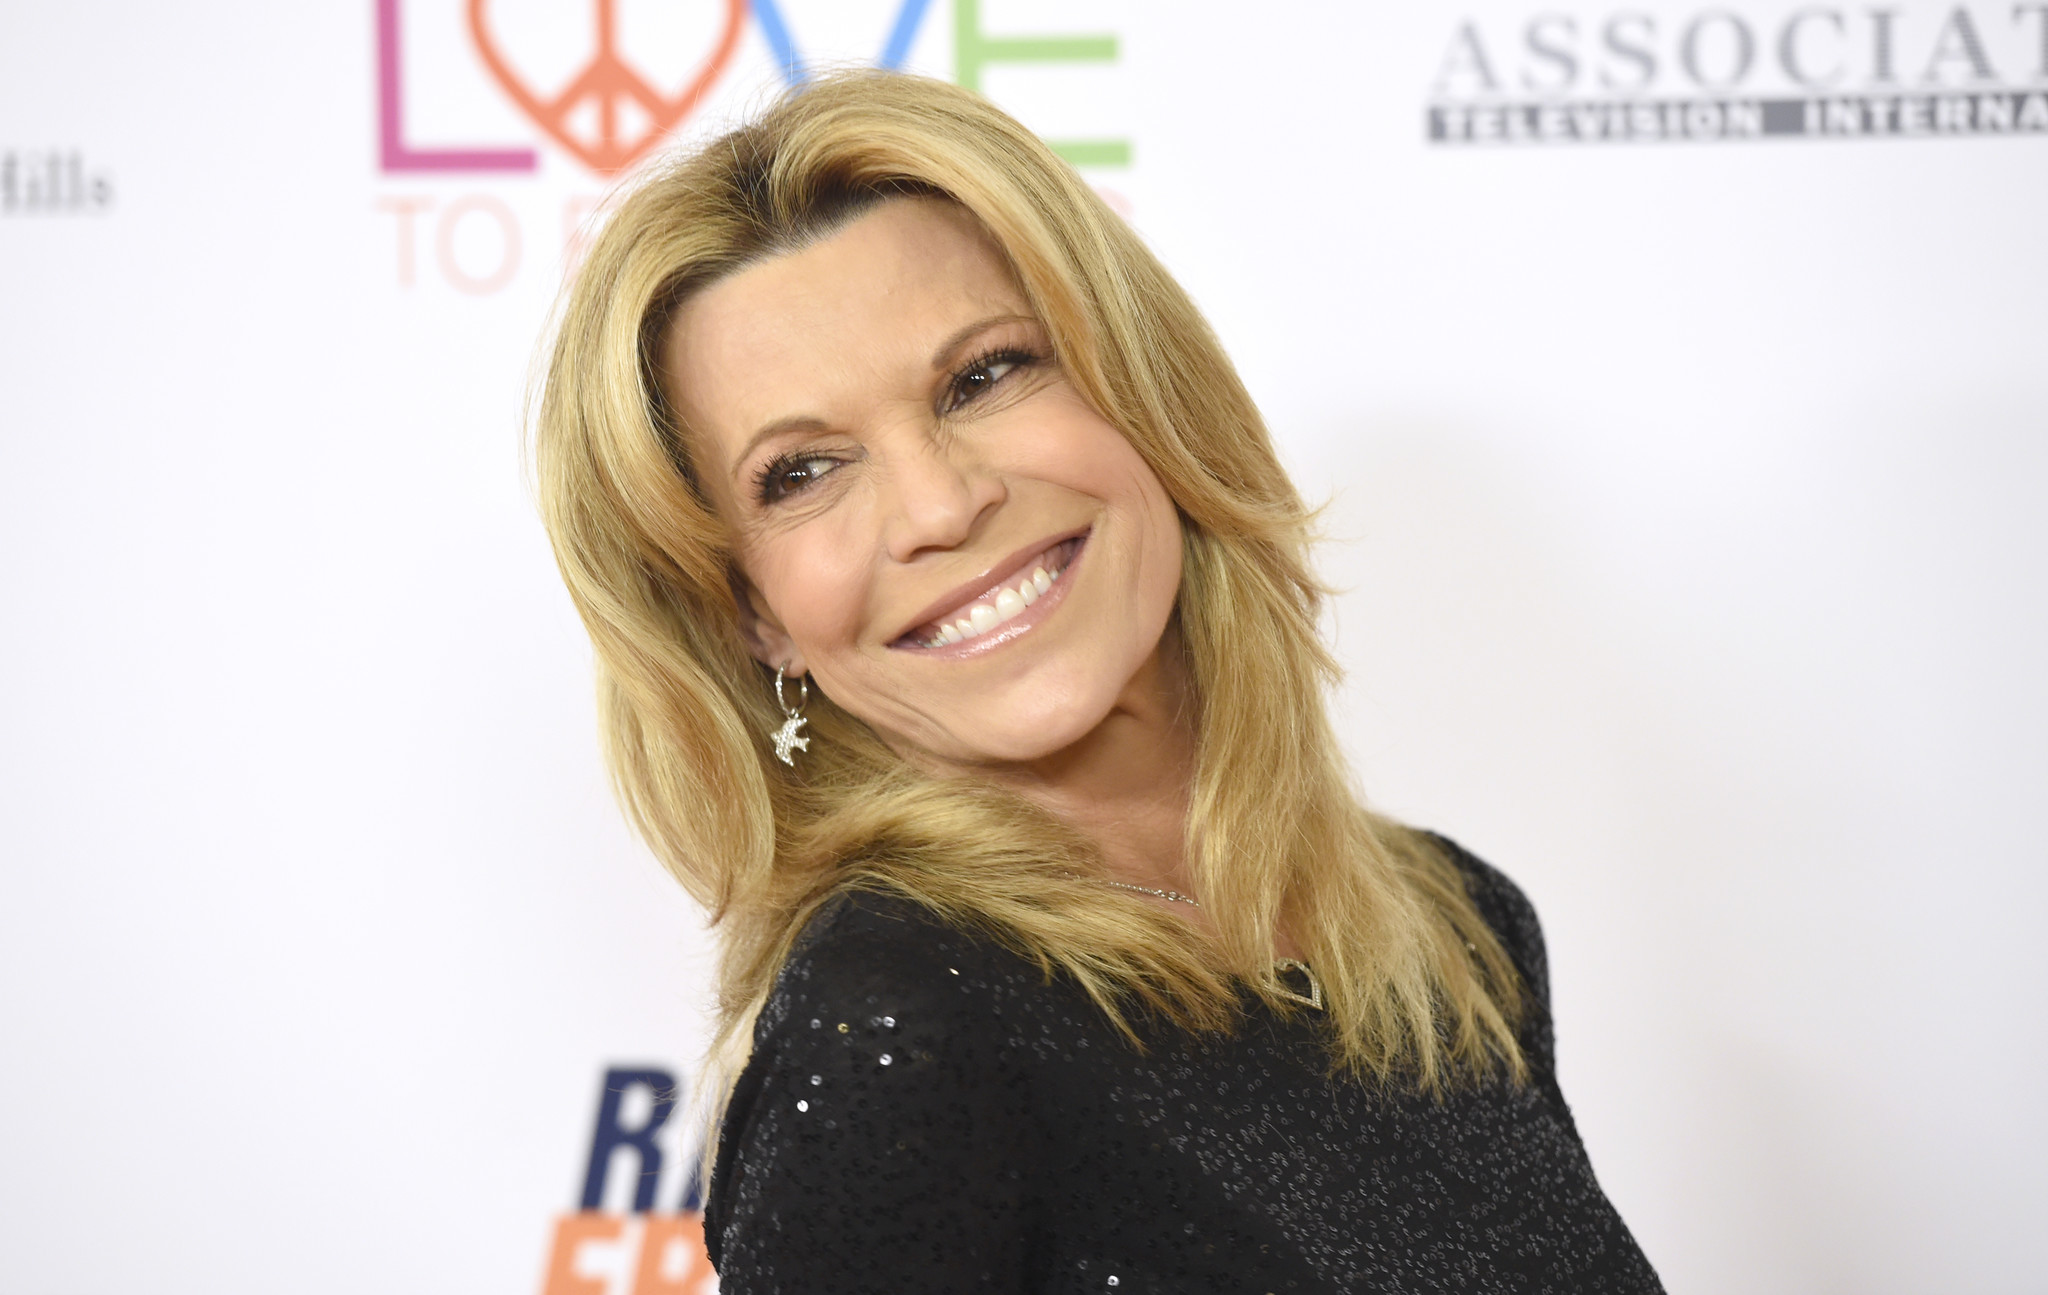 Vanna White was 'scared to death' to take over 'Wheel of Fortune' hosting duties for ailing Pat Sajak